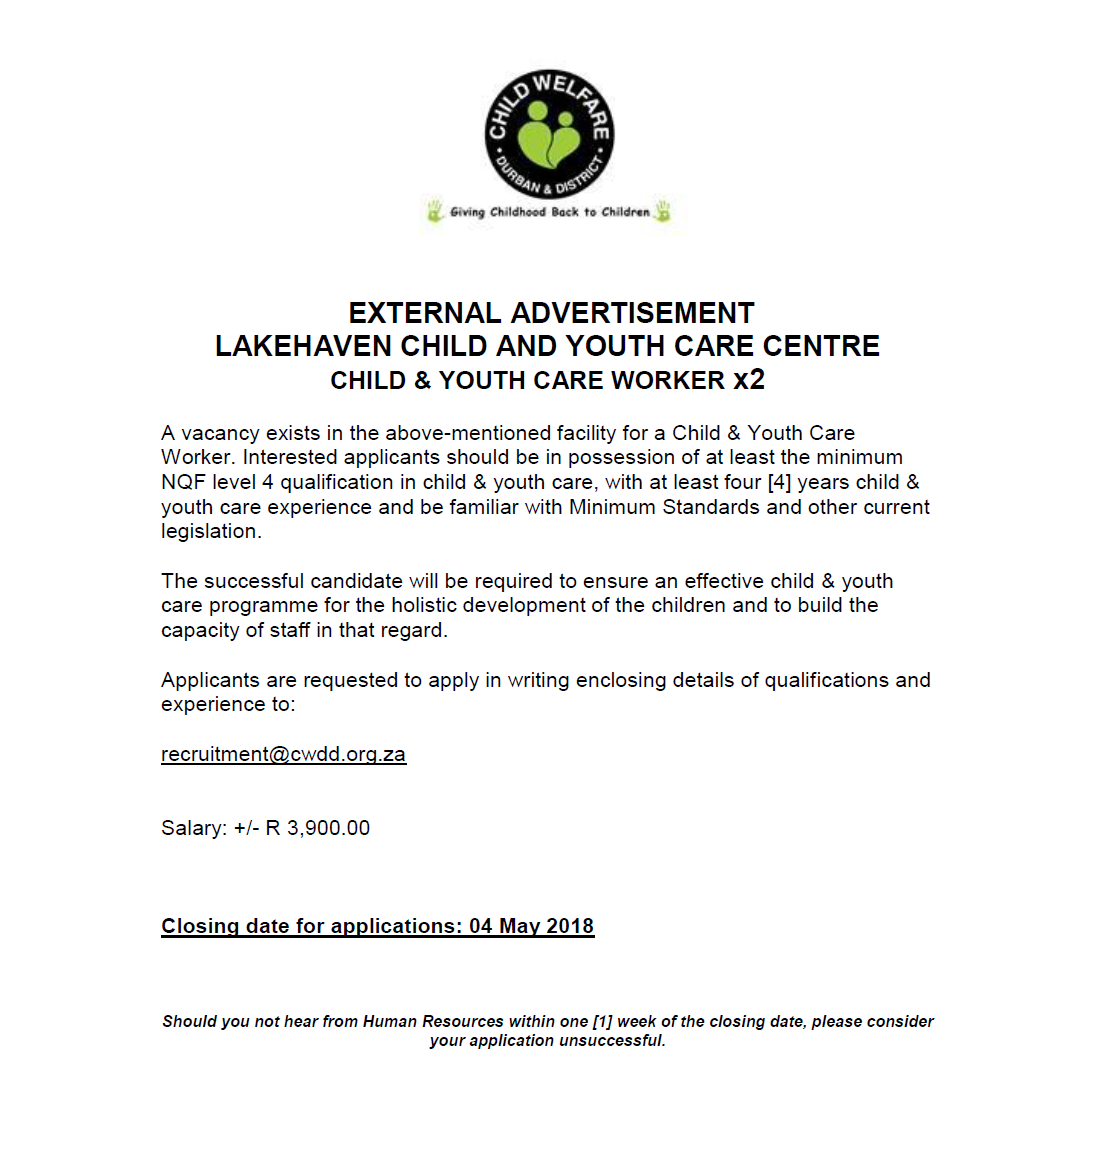 Position Available: Child and Youth Care Worker